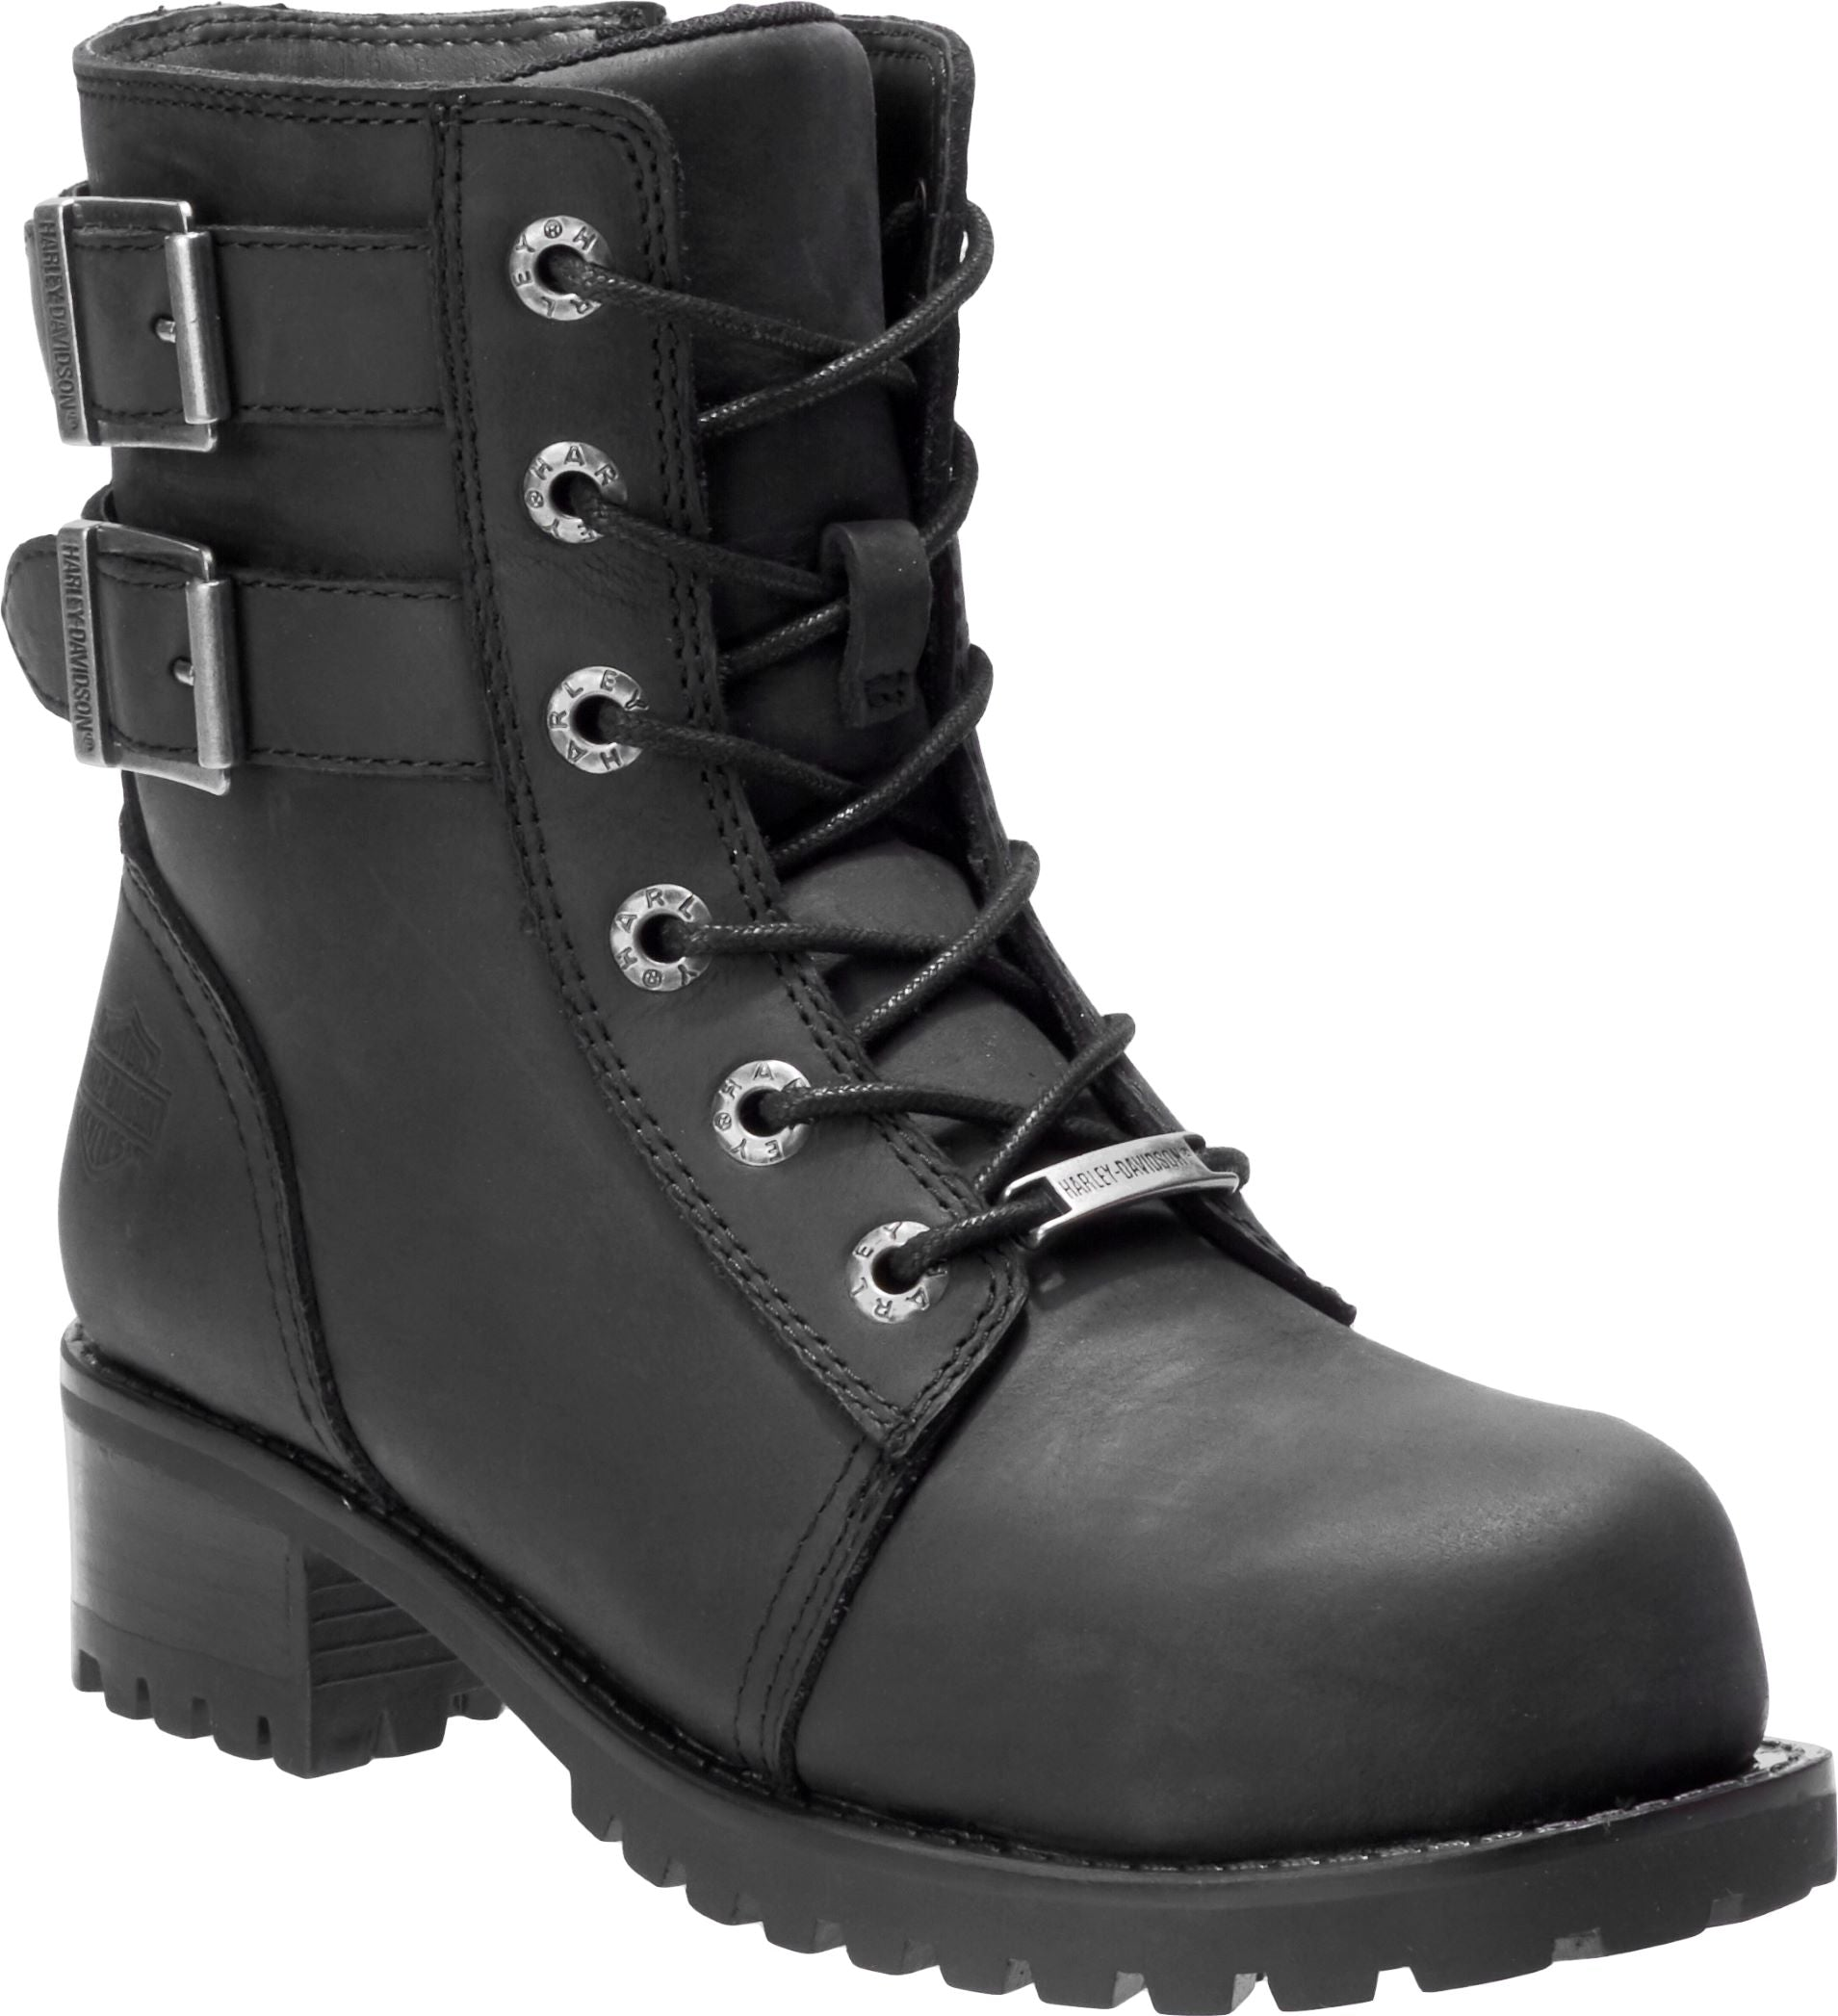 'Harley Davidson' Women's Archer Steel Toe Boot - Black